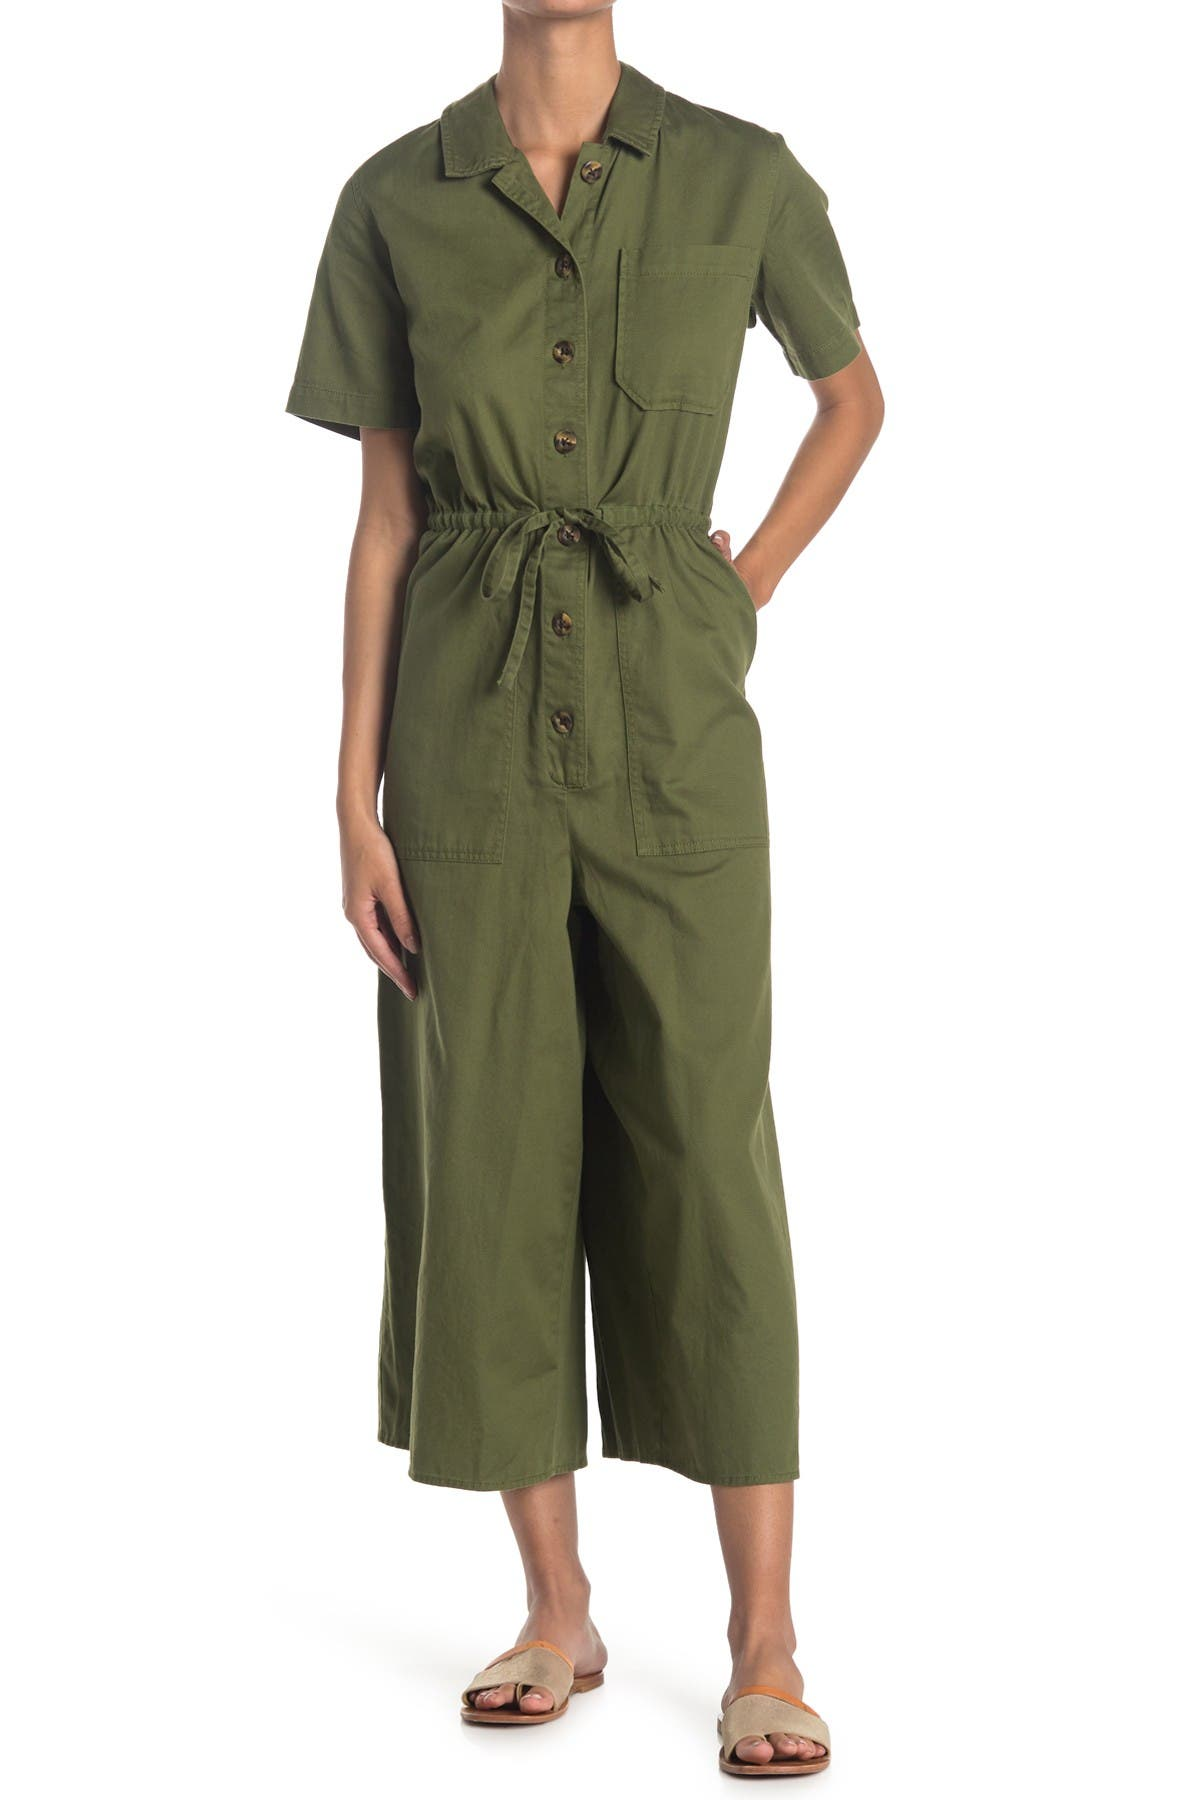 Image of Madewell Wide Leg Utility Jumpsuit